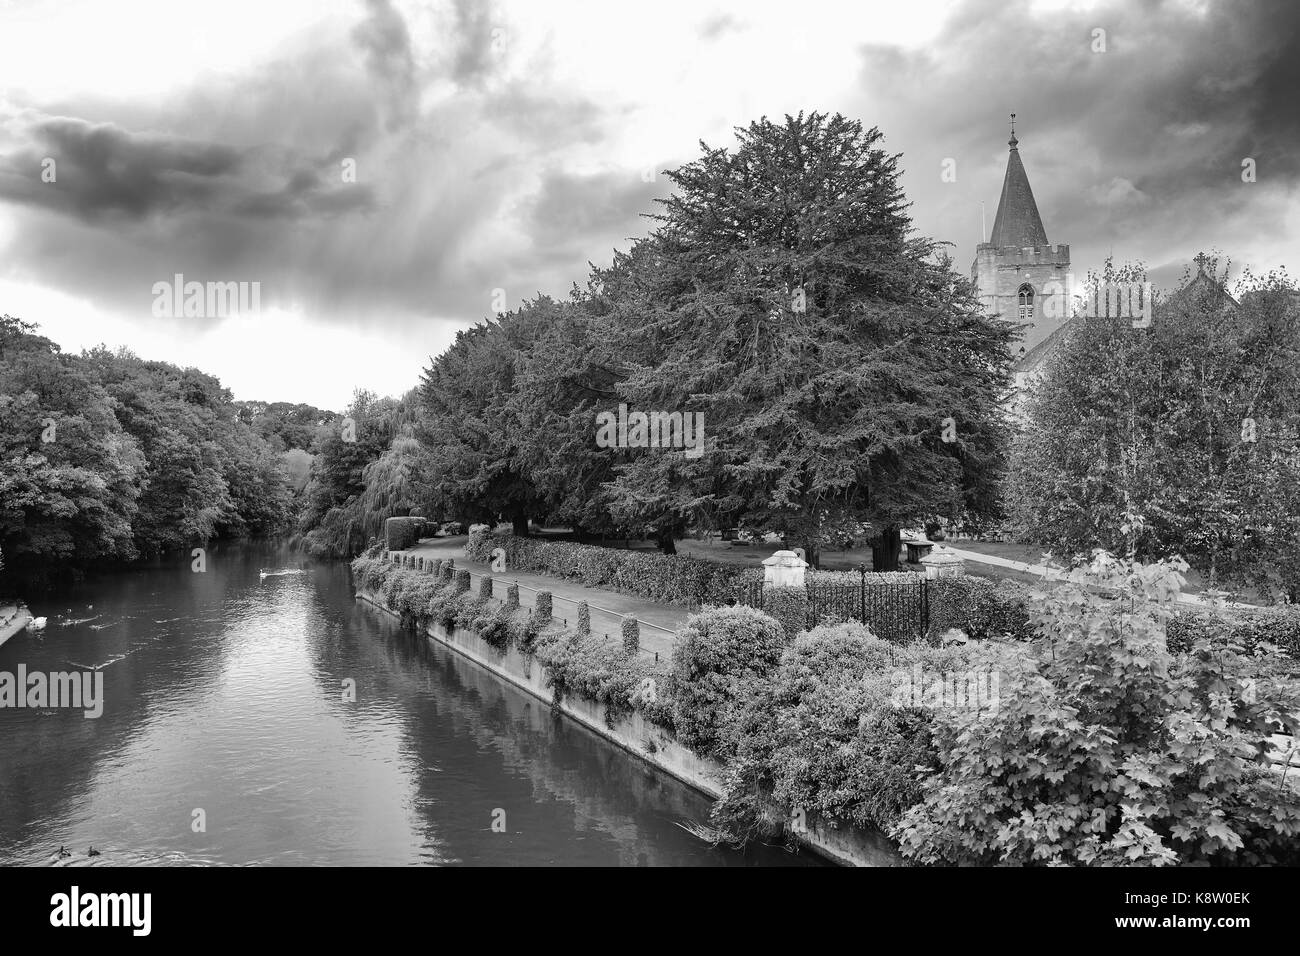 Bradford on Avon Holy Trinity Church - Stock Image